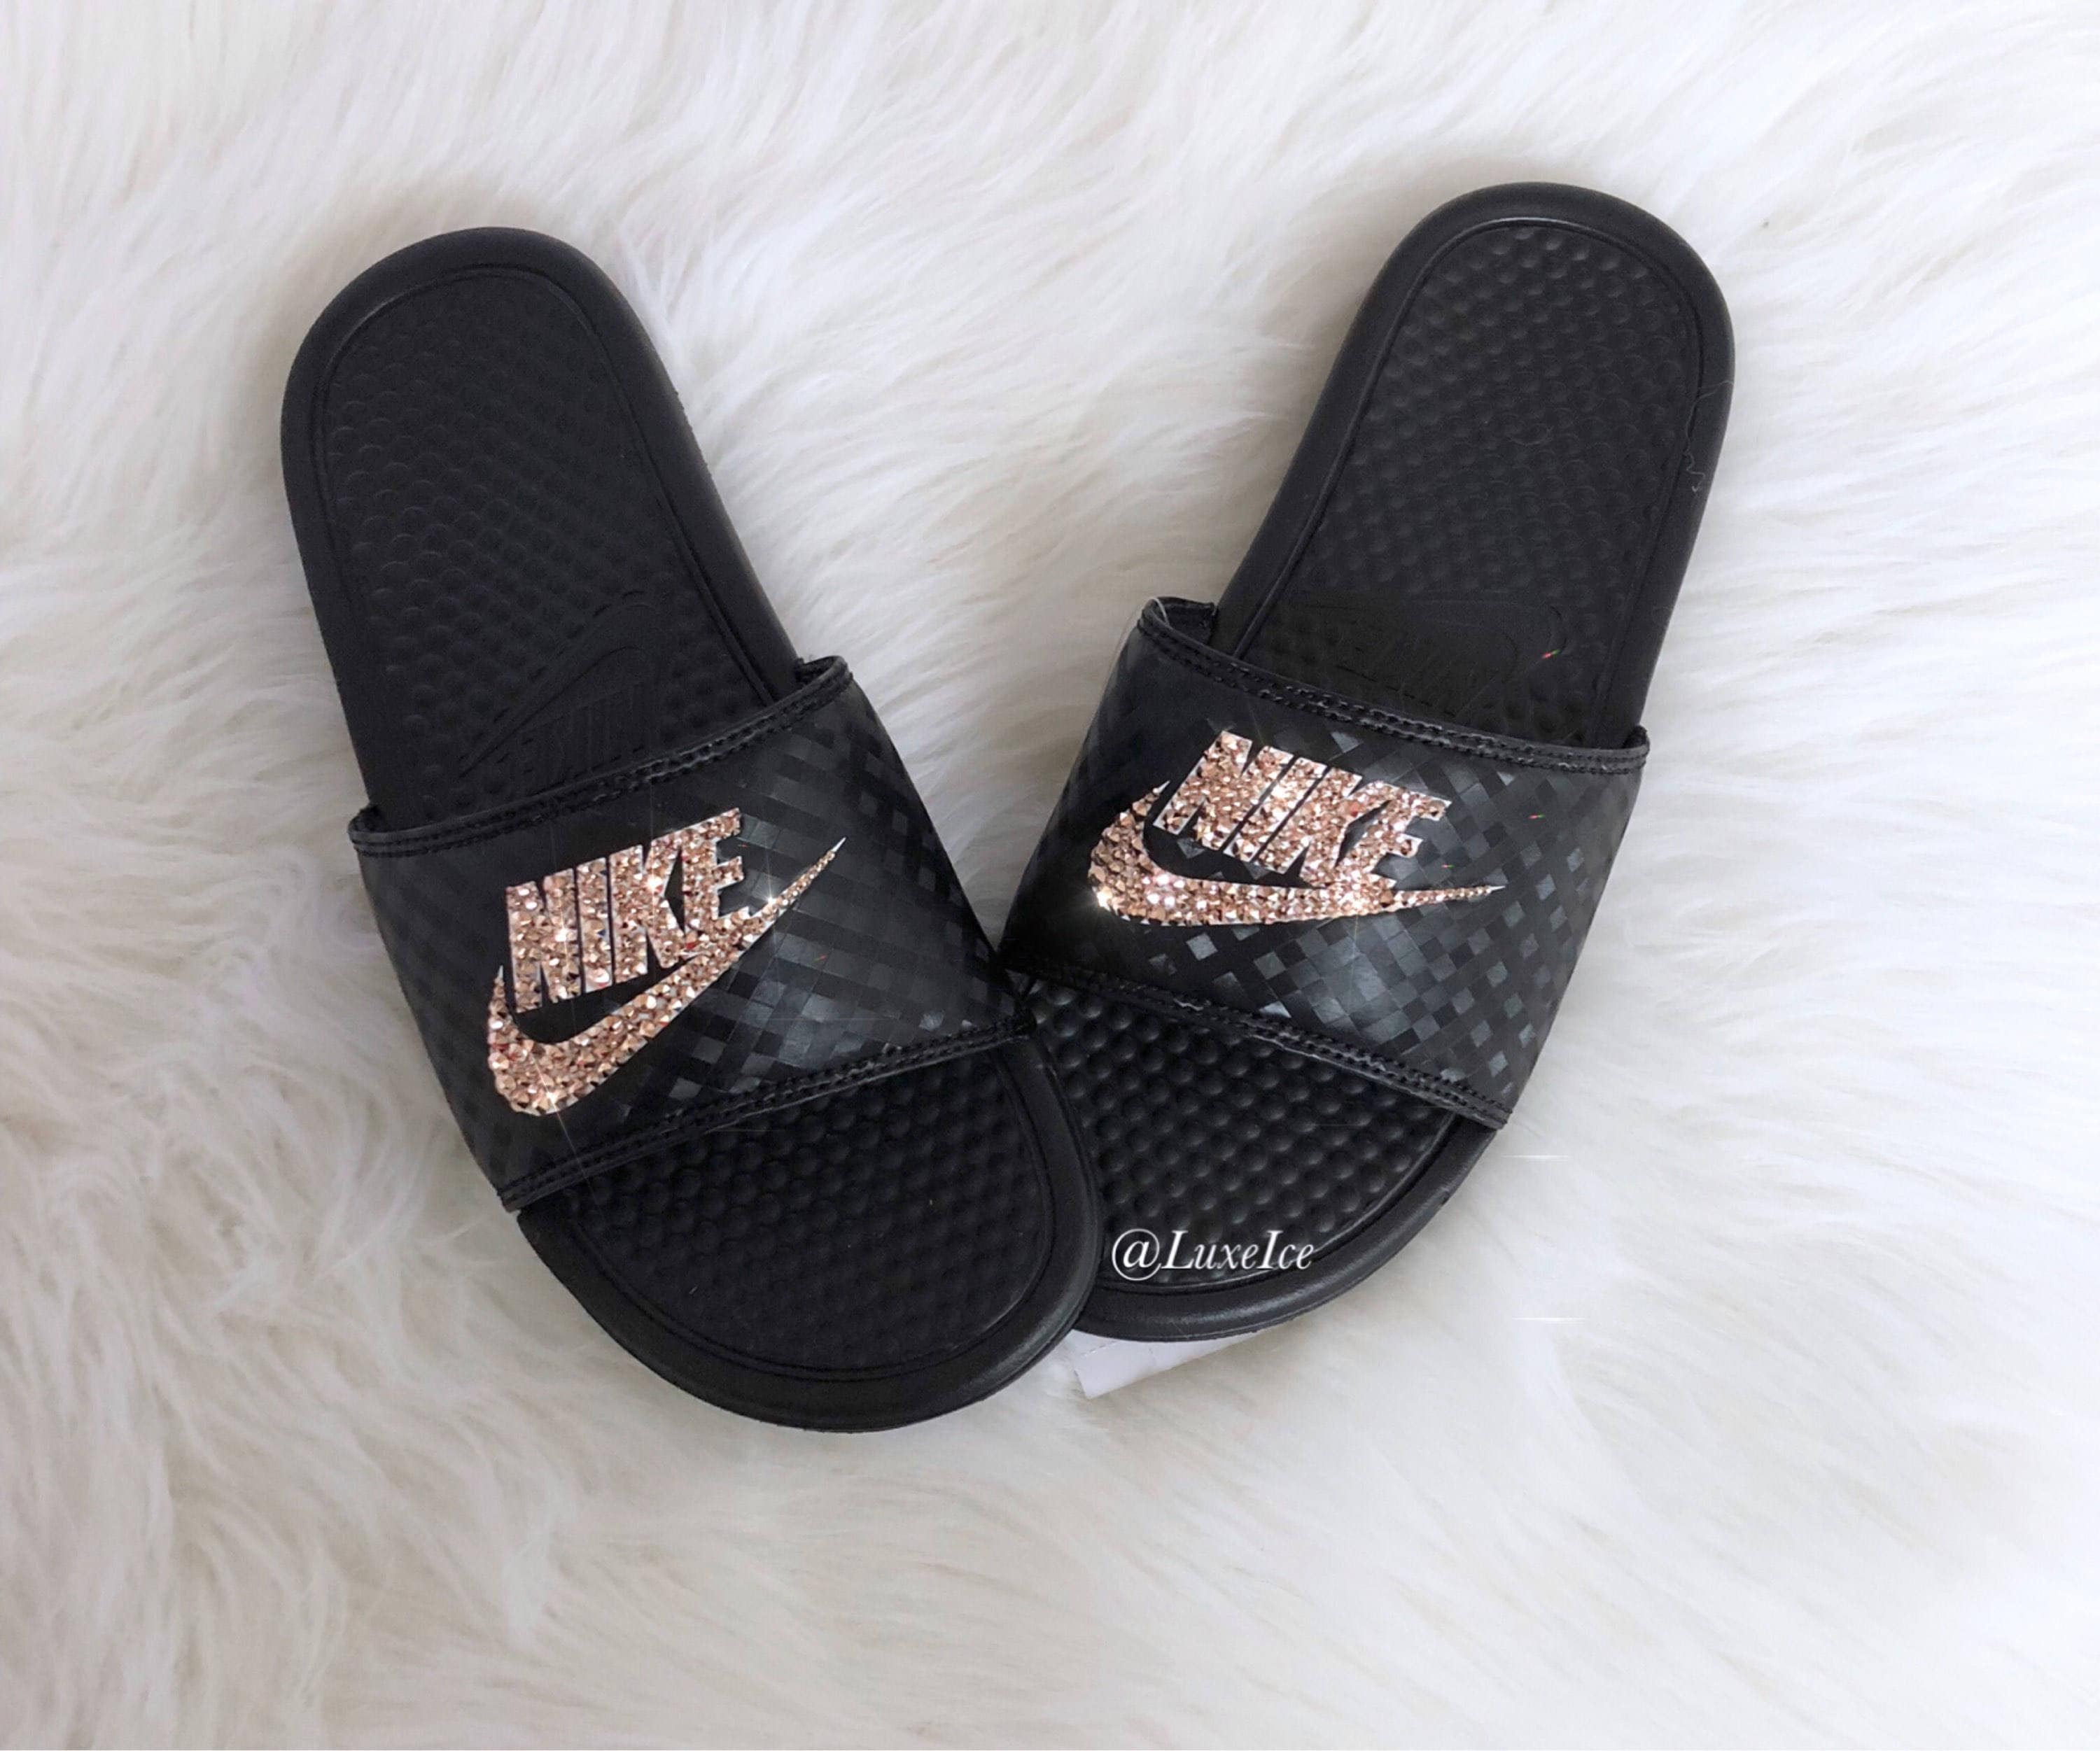 low priced 3160d 72493 Women's Swarovski Nike Benassi JDI Slides Sandals customized with Rose Gold  Swarovski Xirius Cut Crystals.